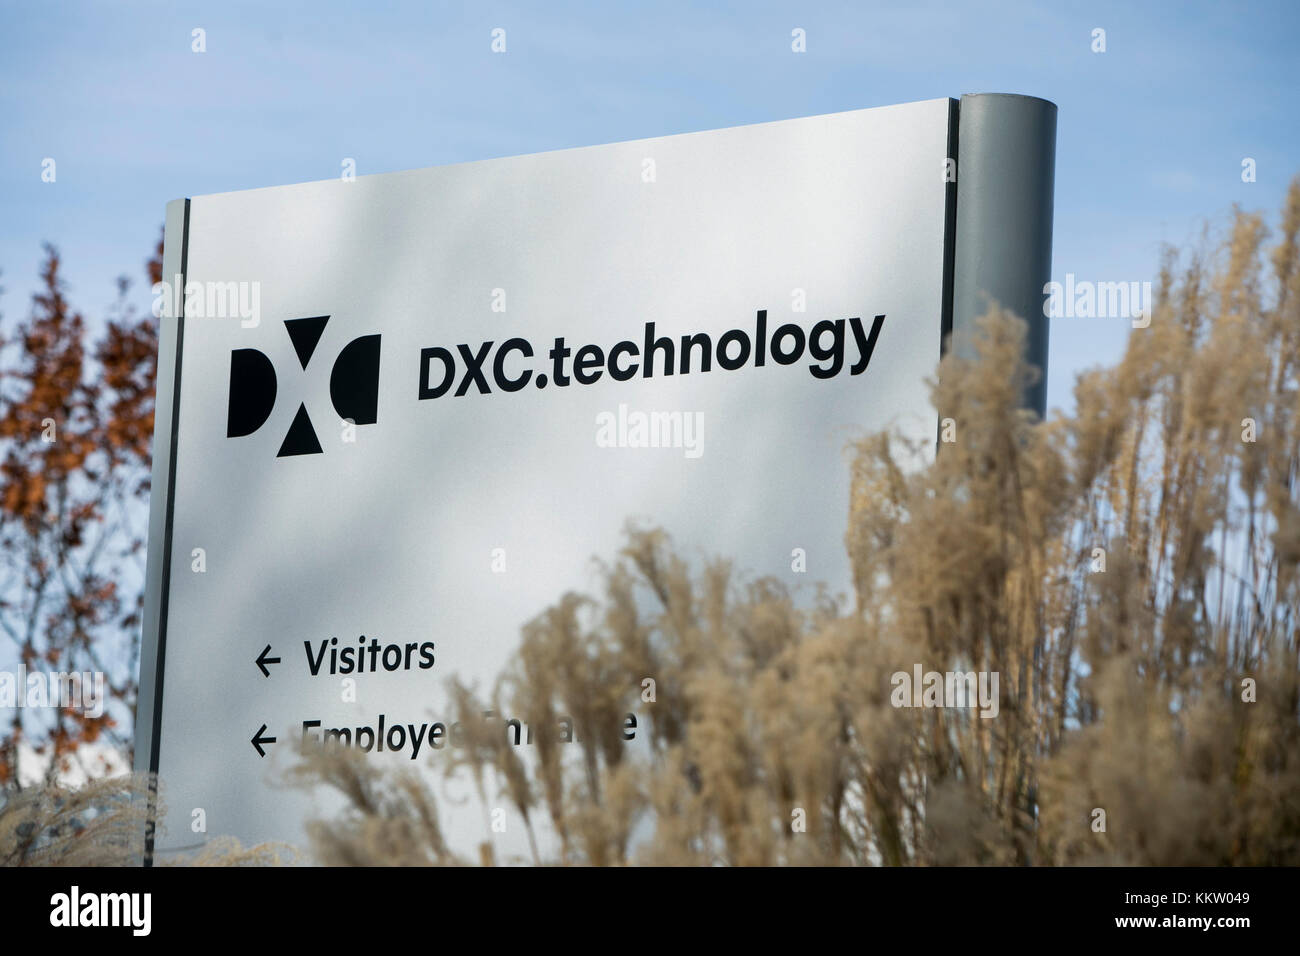 A logo sign outside of a facility occupied by DXC Technology